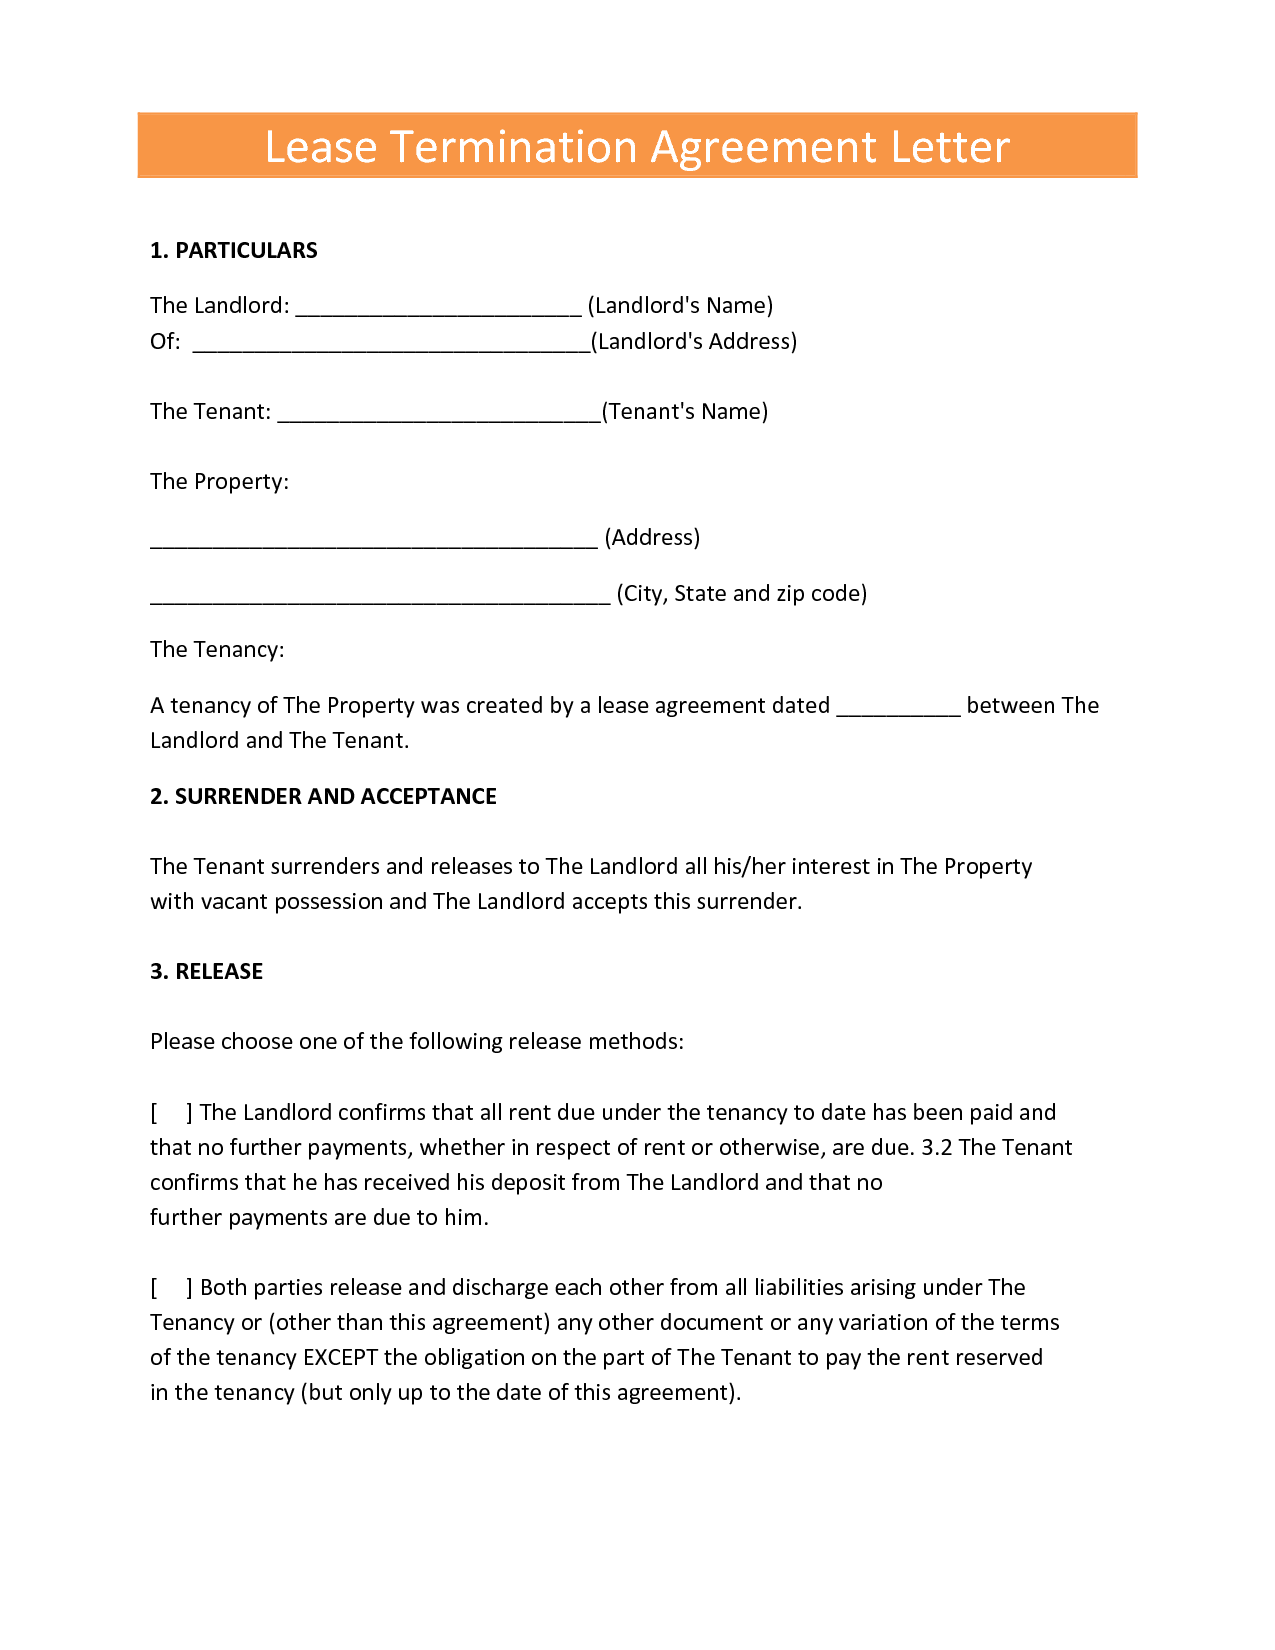 lease termination agreement letter by elfir61807 cover